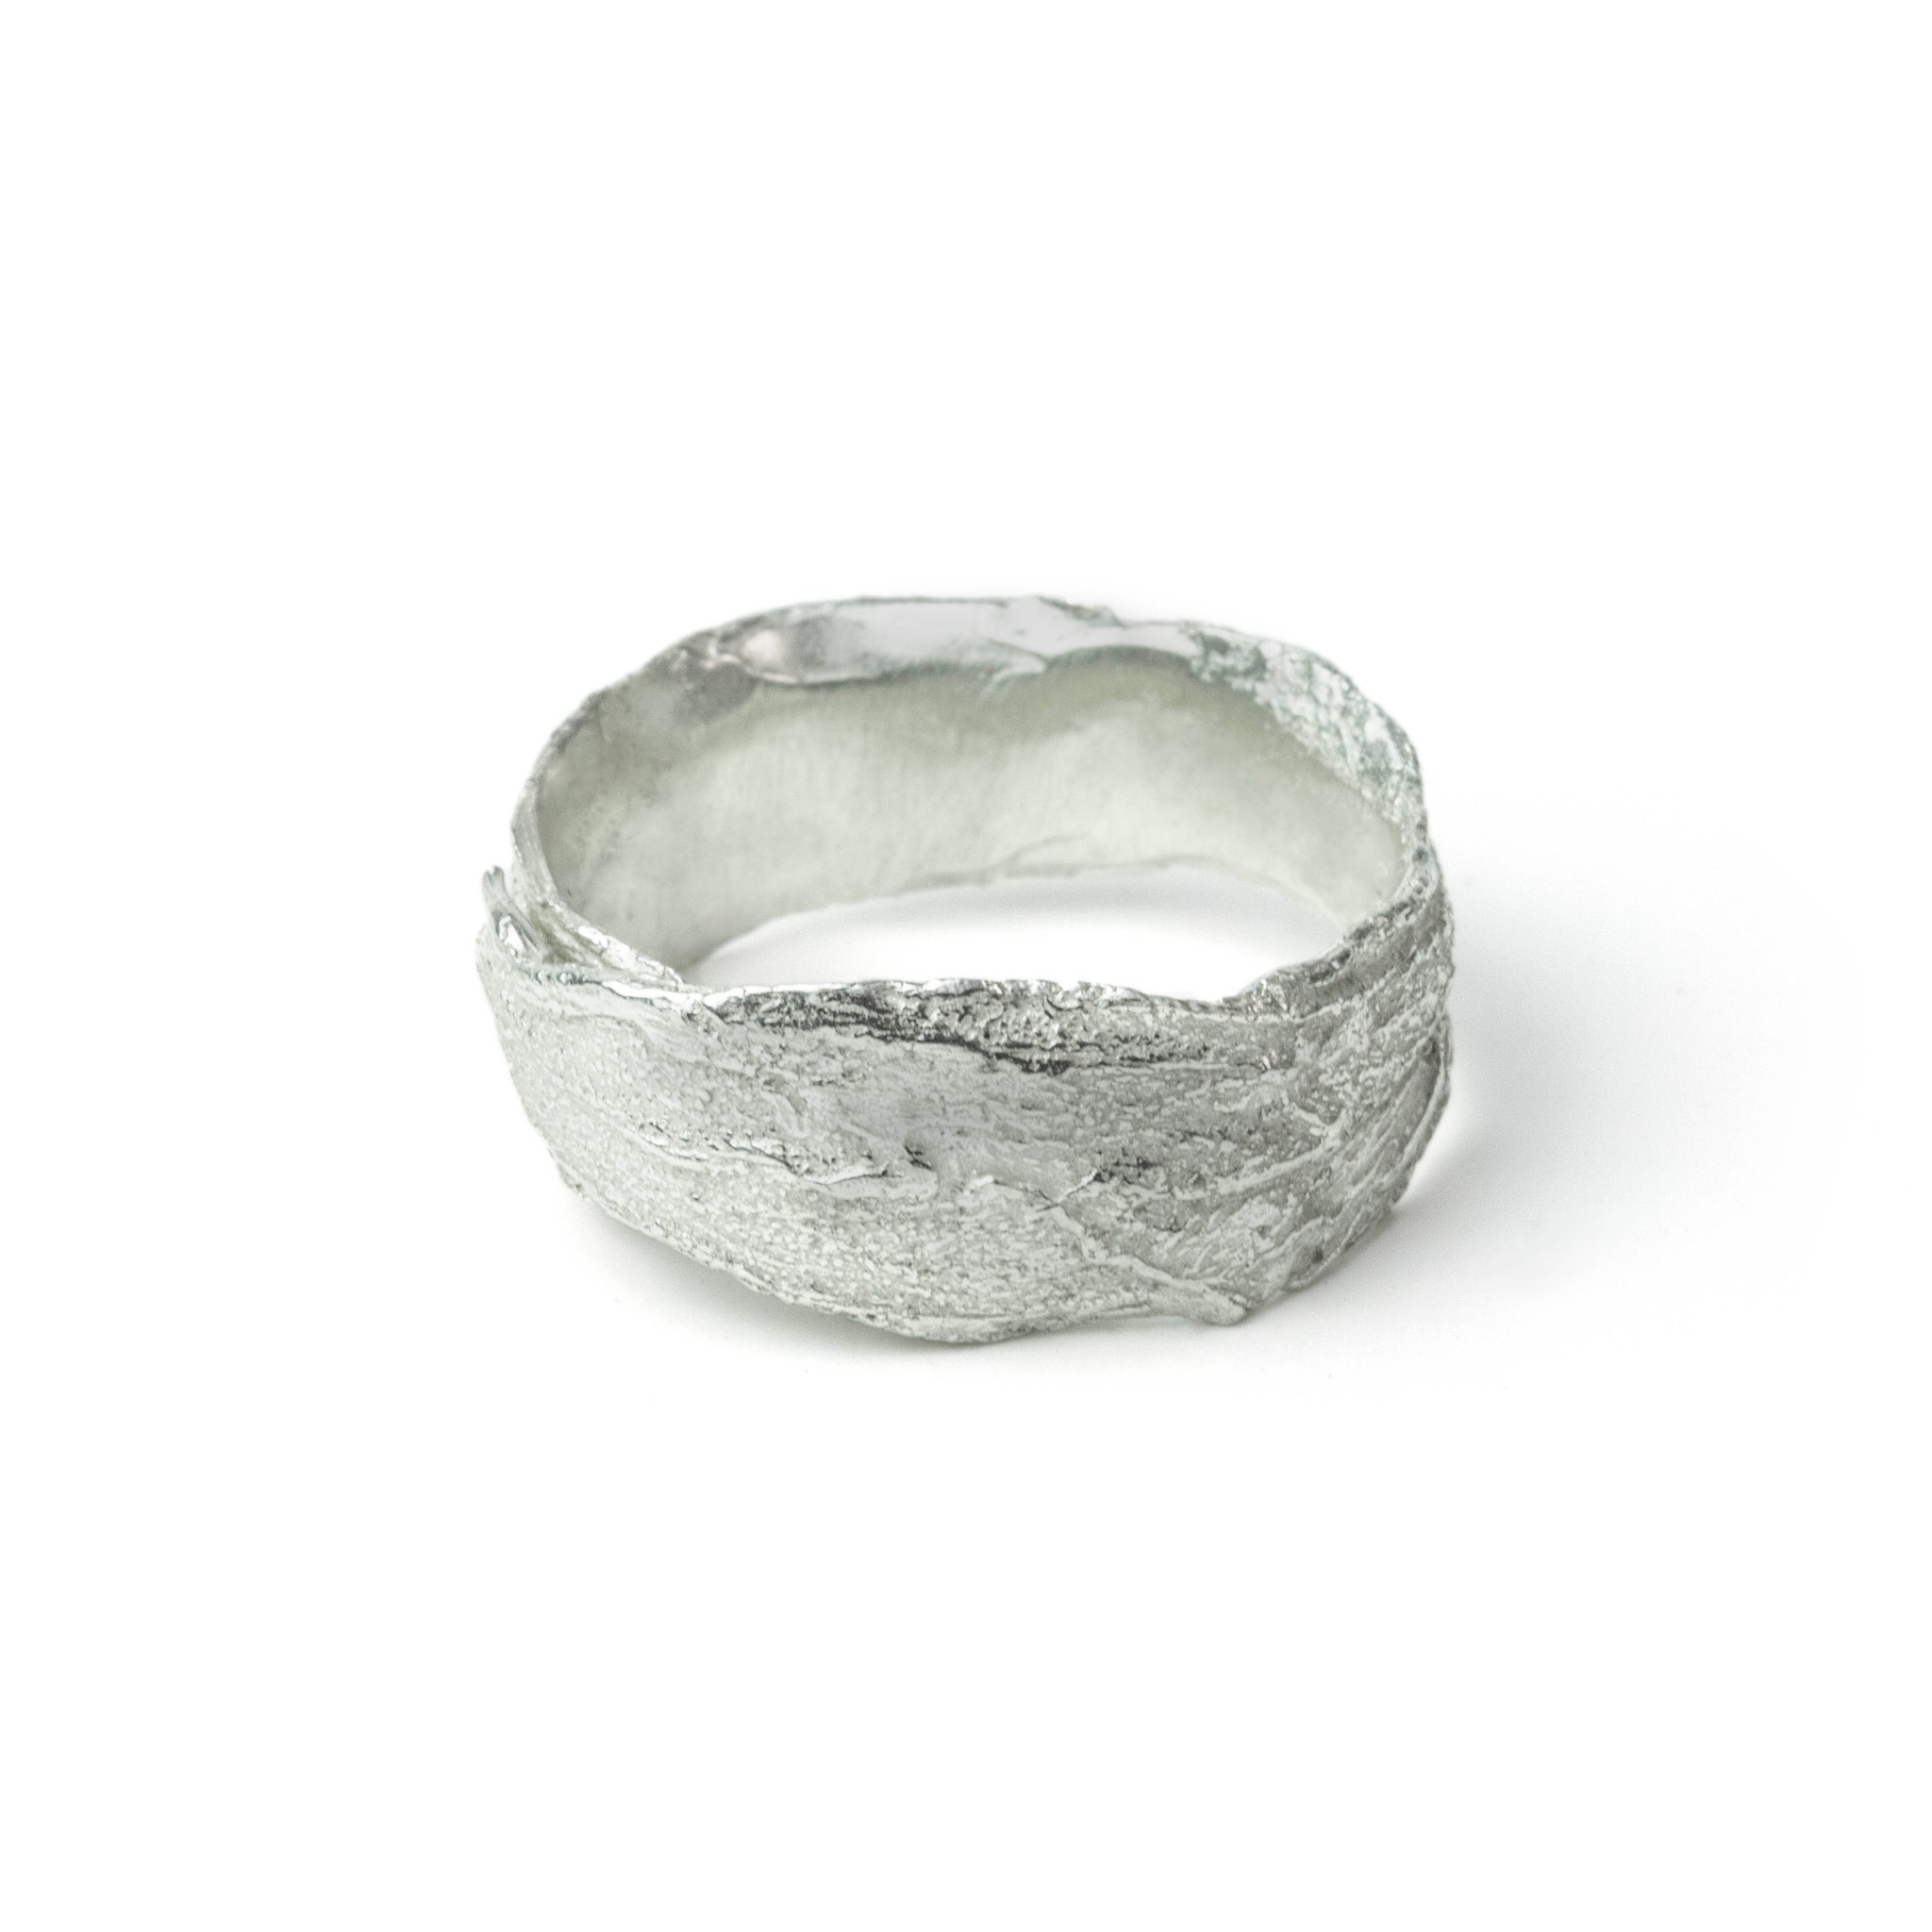 Silver Snow Drop Leaf Wrap Ring on white background